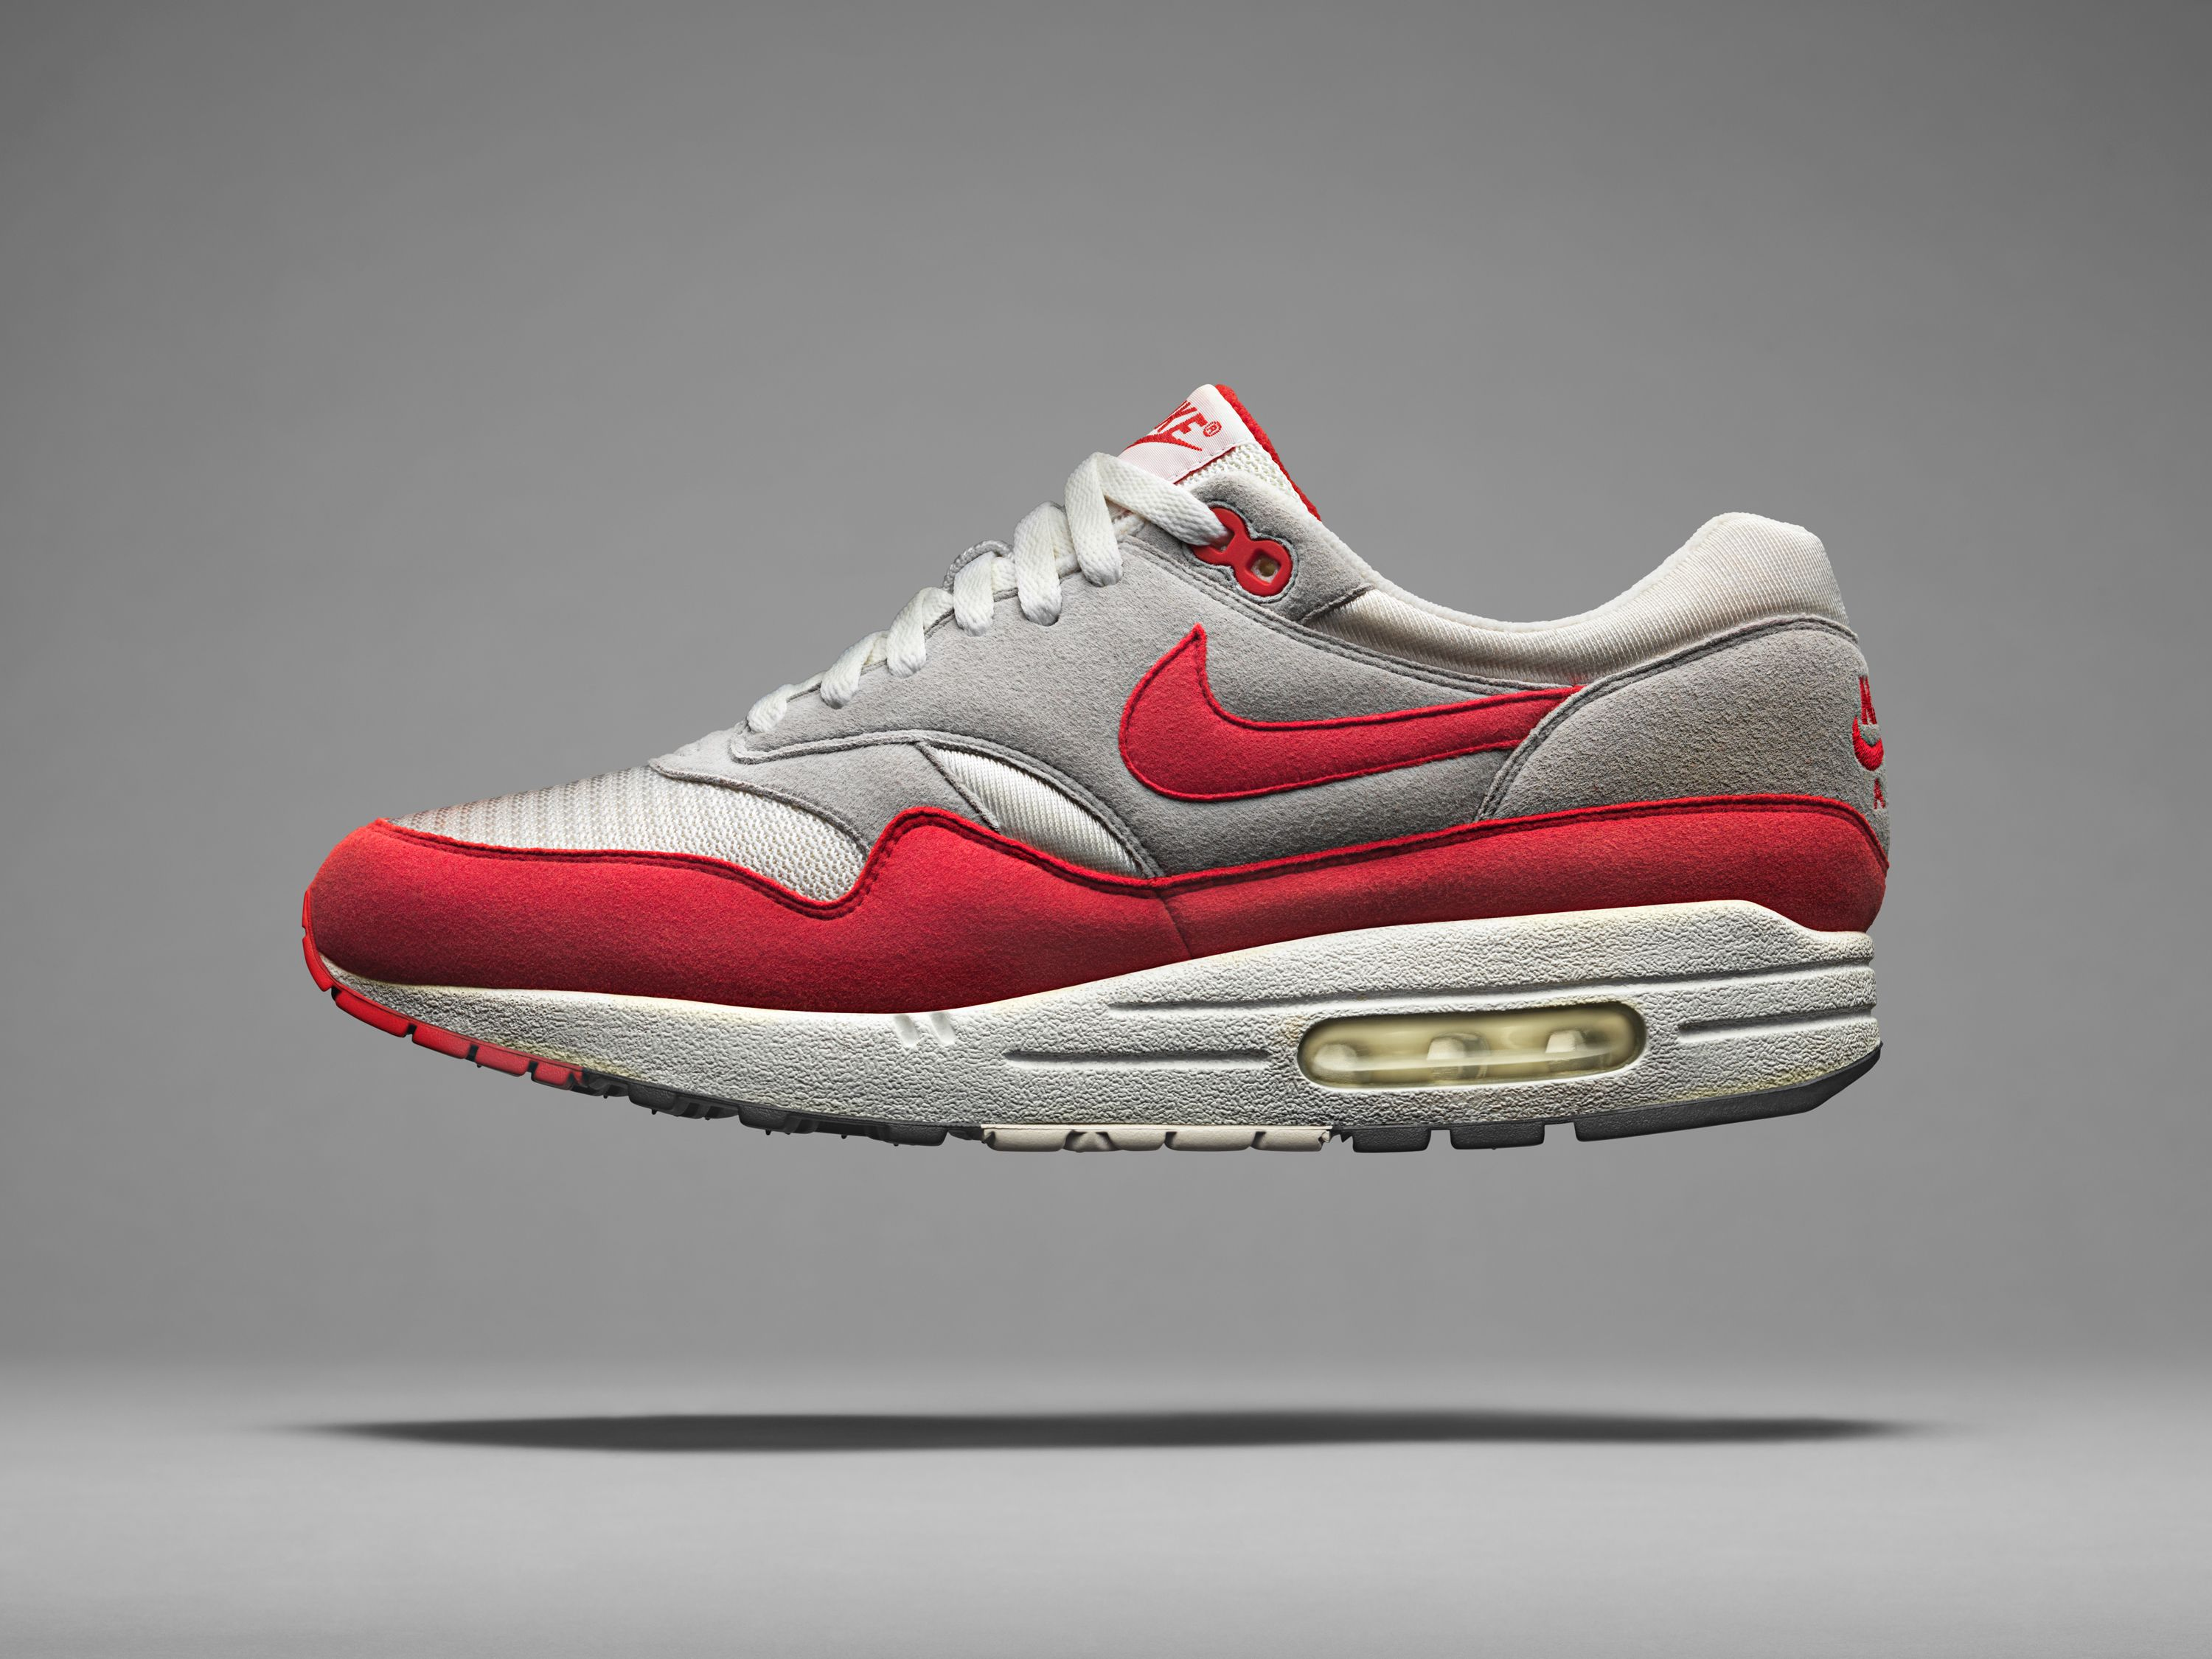 Explore Air Max 1, Nike Air Max, and more!